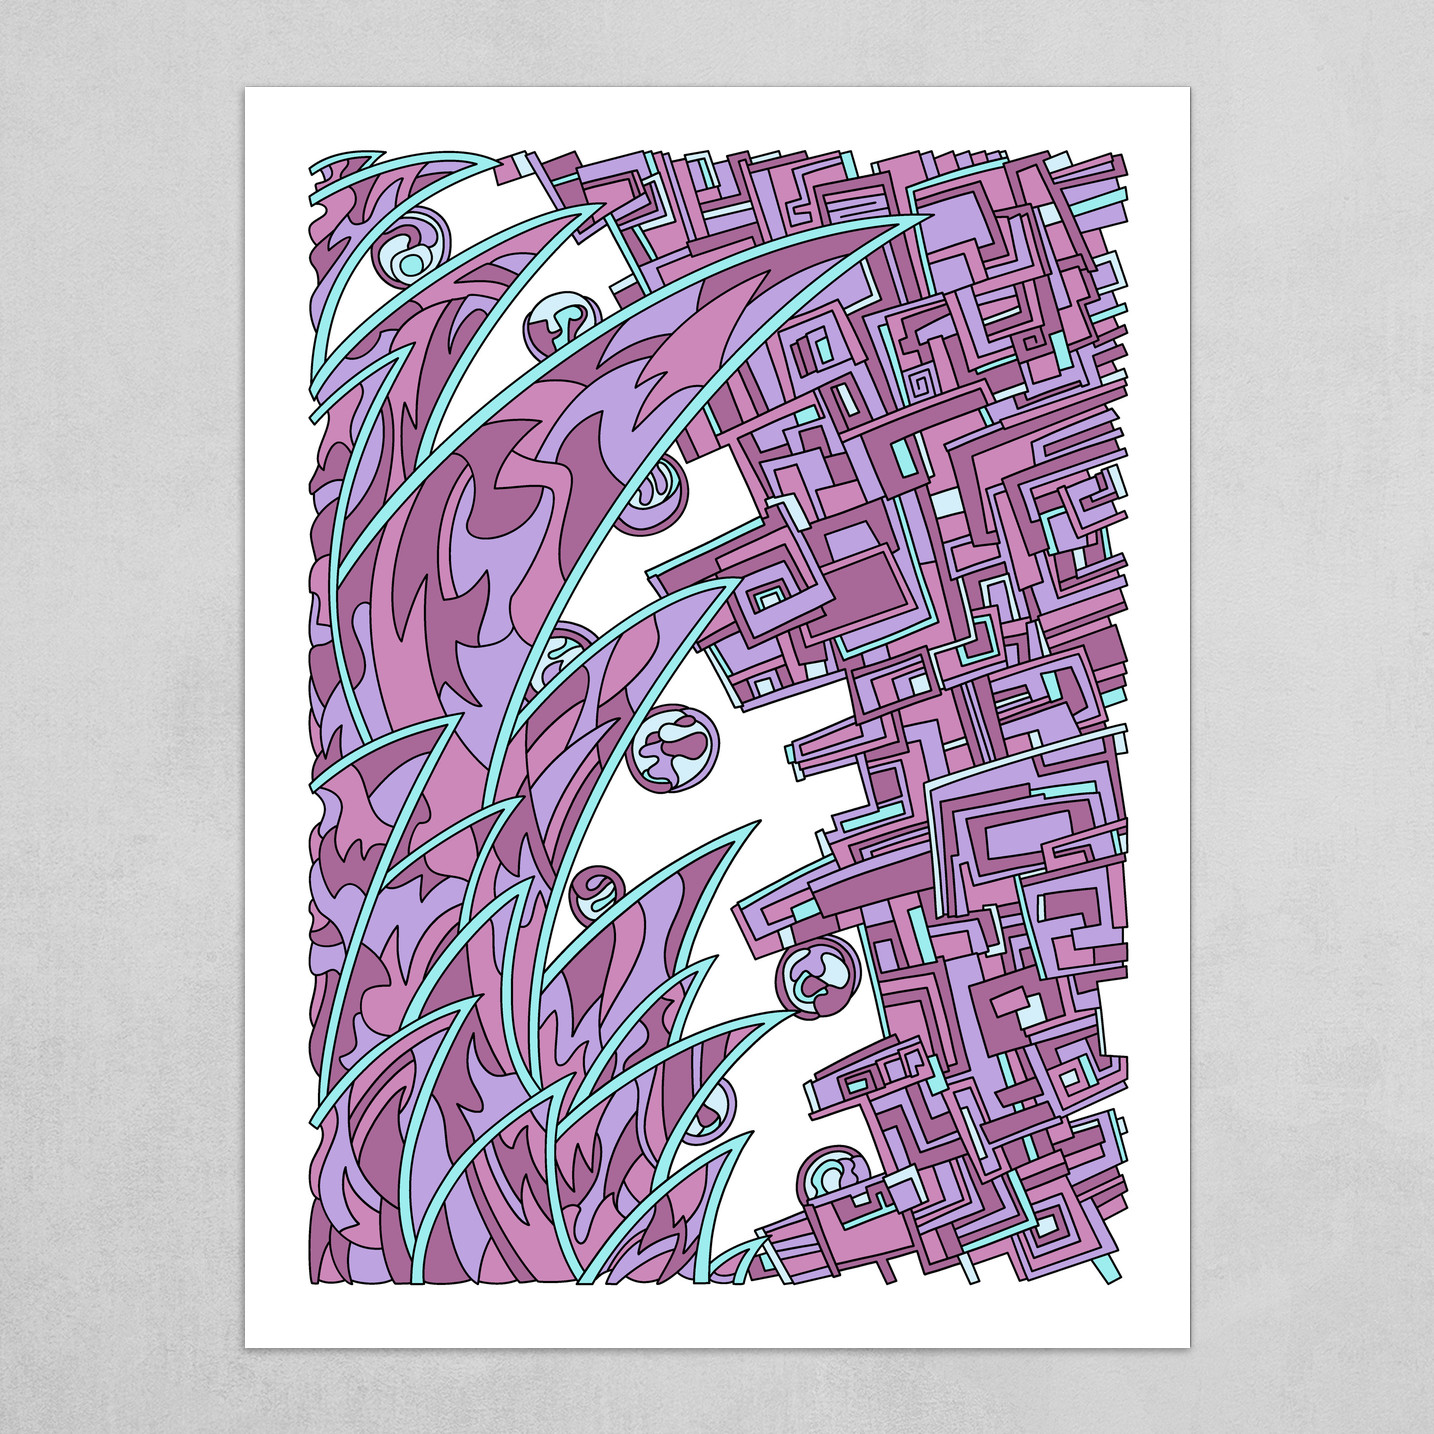 Wandering Abstract Line Art 18: Pink